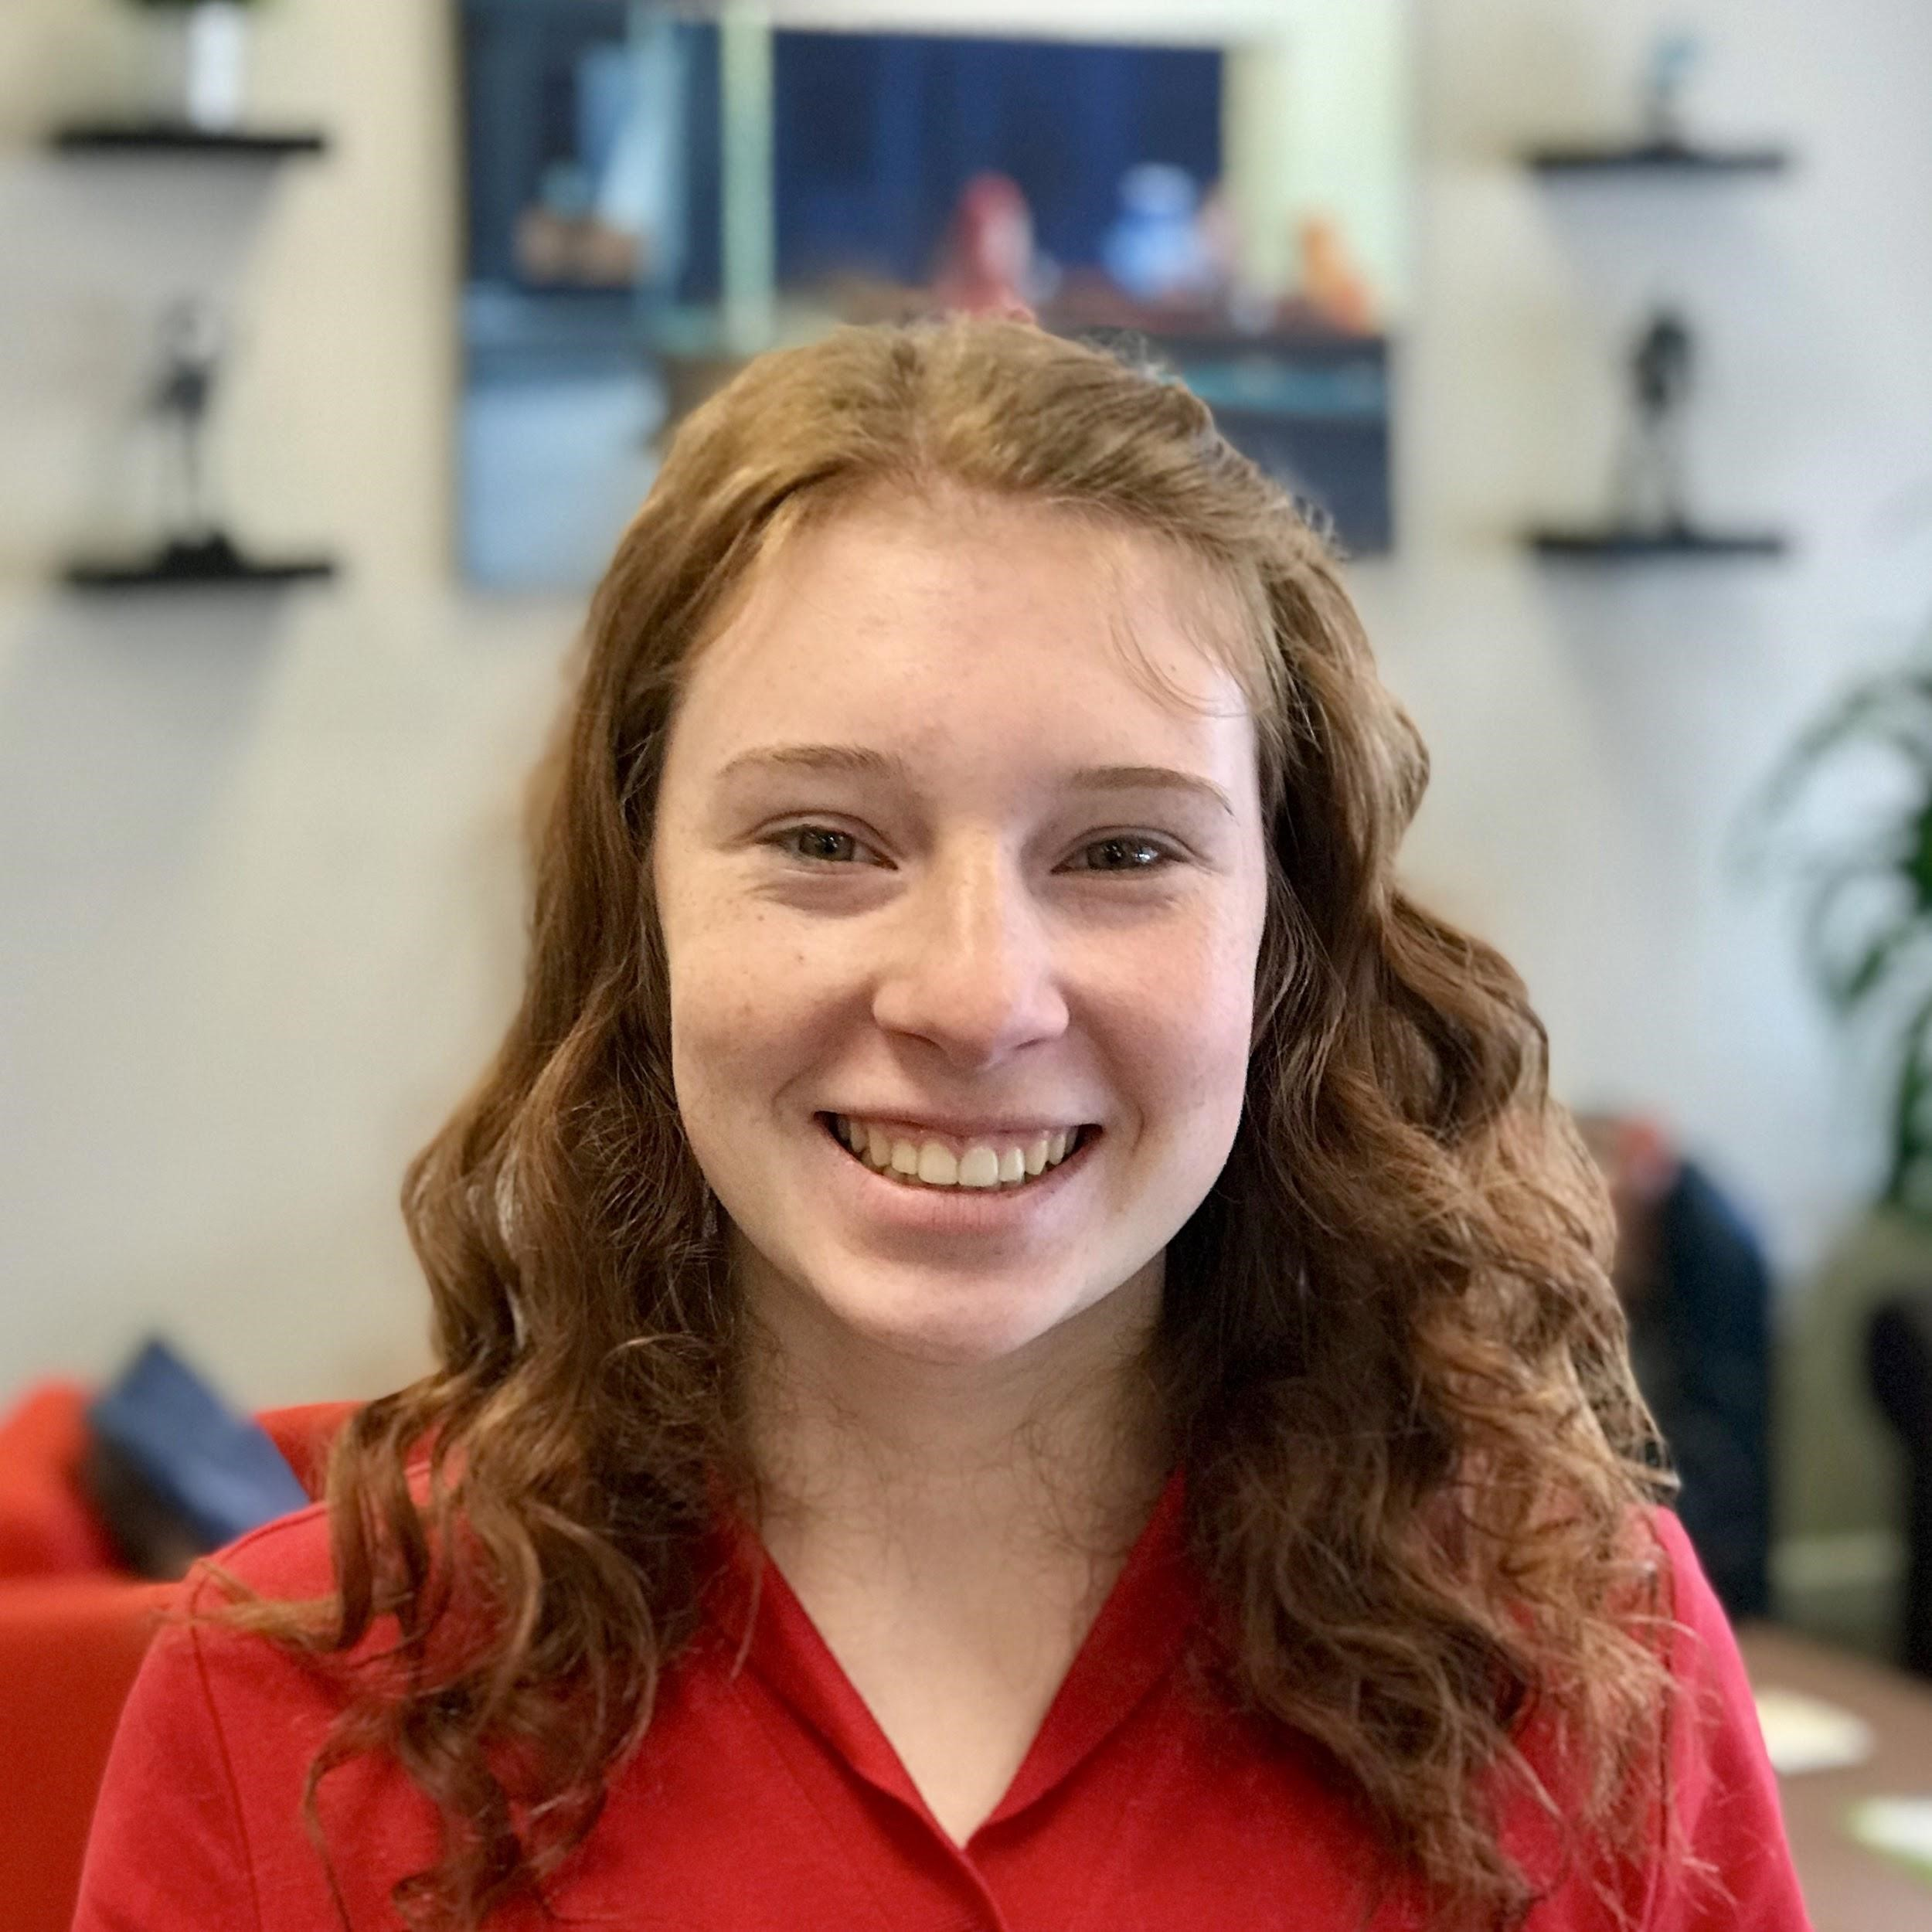 Mackenzie Cole  - New Technology High School Class of 2019  Interests: Dance, Family Time, School  My name is Mackenzie Cole. I recently graduated from New Technology High School, and I absolutely love school. I have three little sisters who mean the world to me. I am very dedicated to my dance competition team, where I dance 20 hours a week. I like photography and psychology. However, I want to be a psychiatrist for children what I am older. I love the life I currently lead, and I cannot wait for my life to come in a decade.